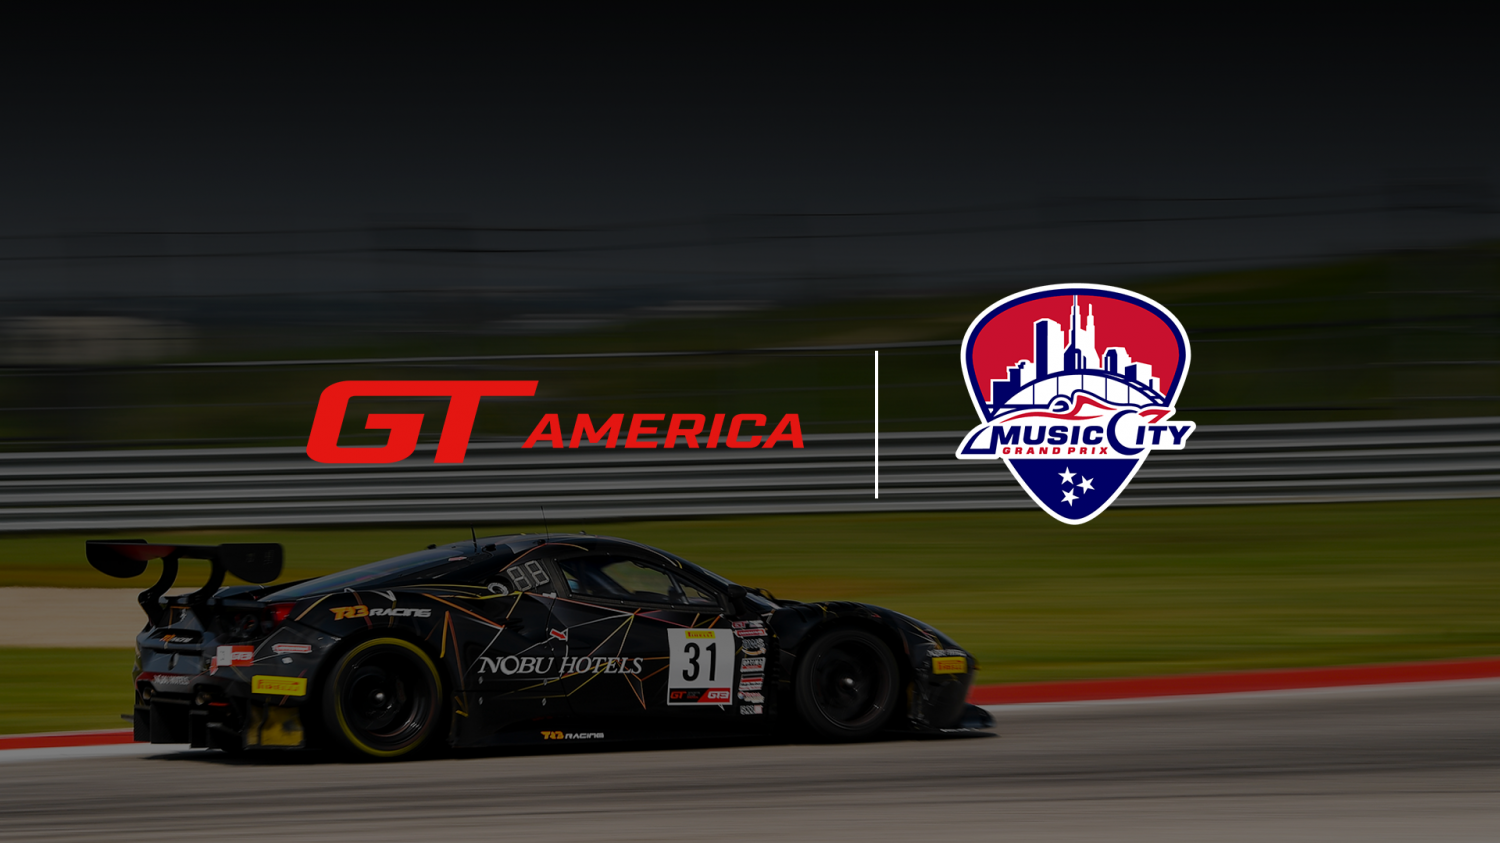 GT Racing Speeds into Nashville, Joining the Music City Grand Prix